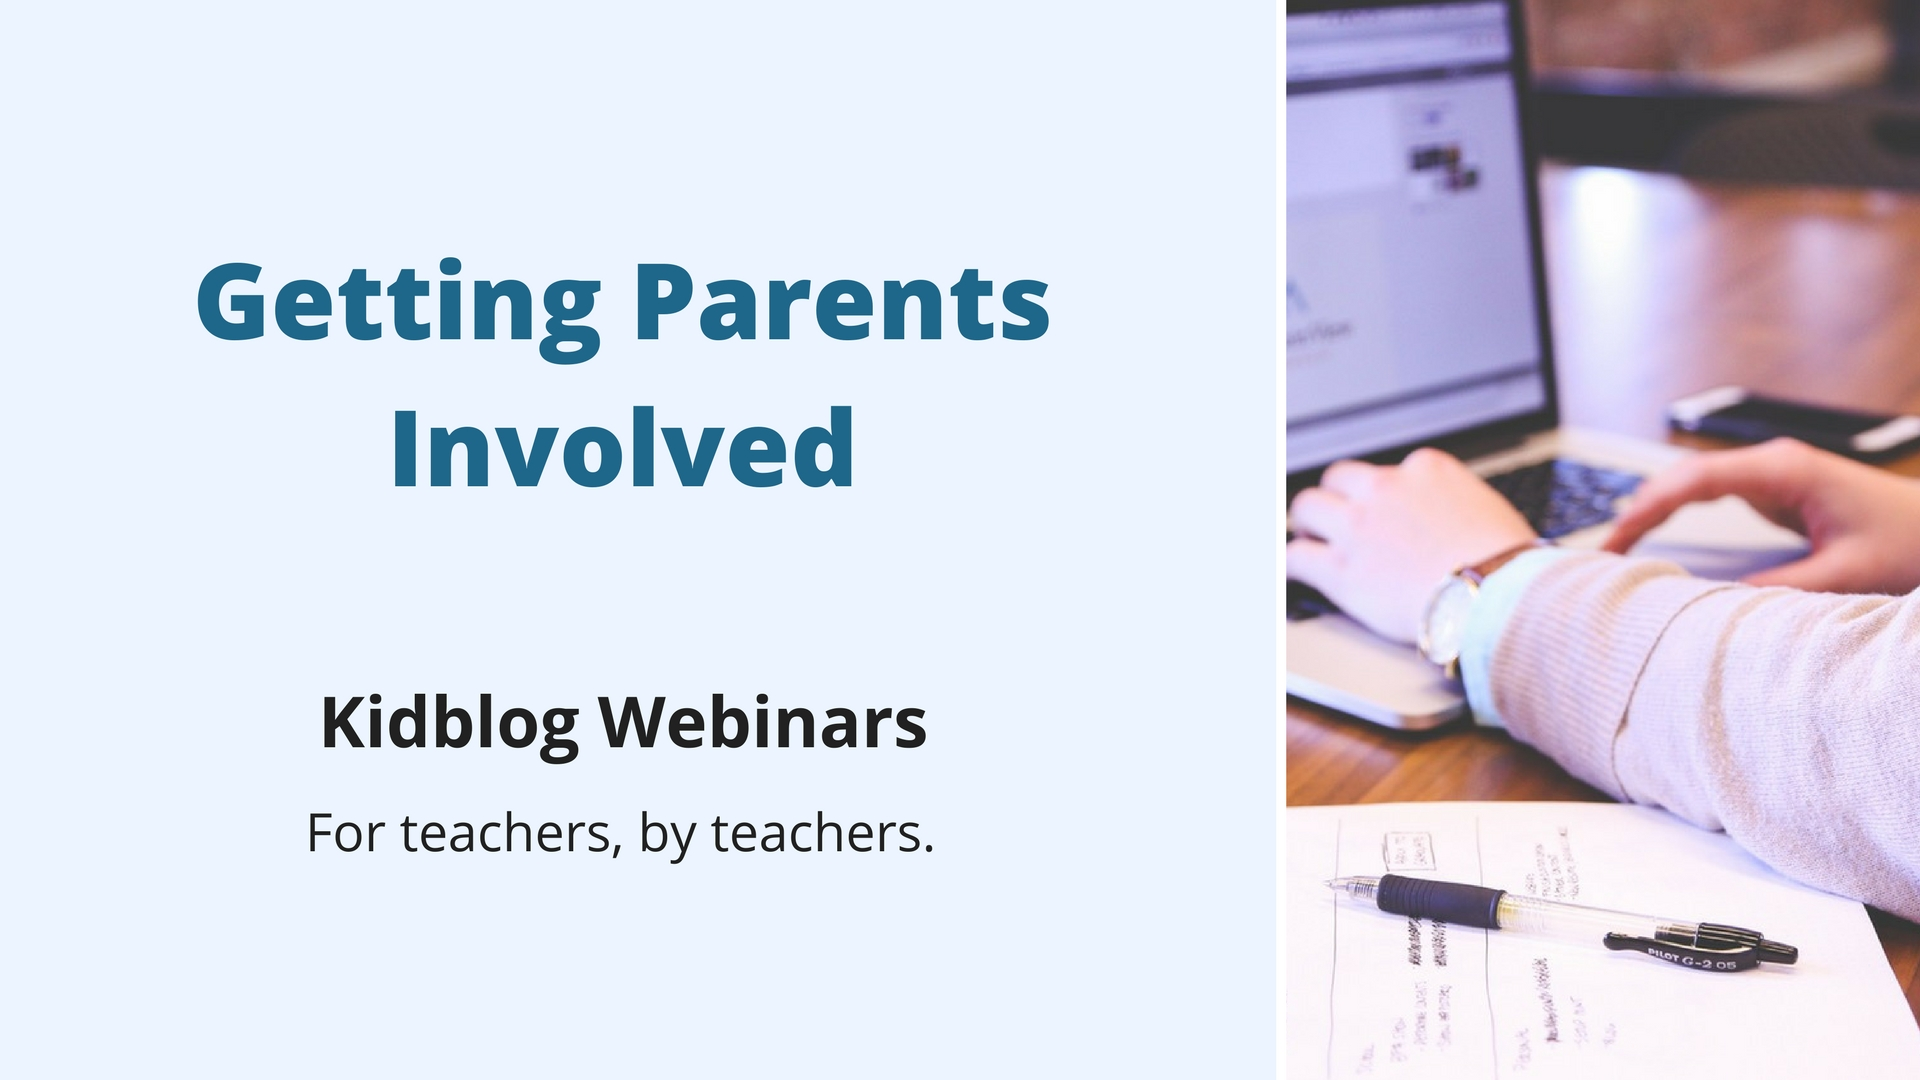 Webinar: Getting Parents Involved